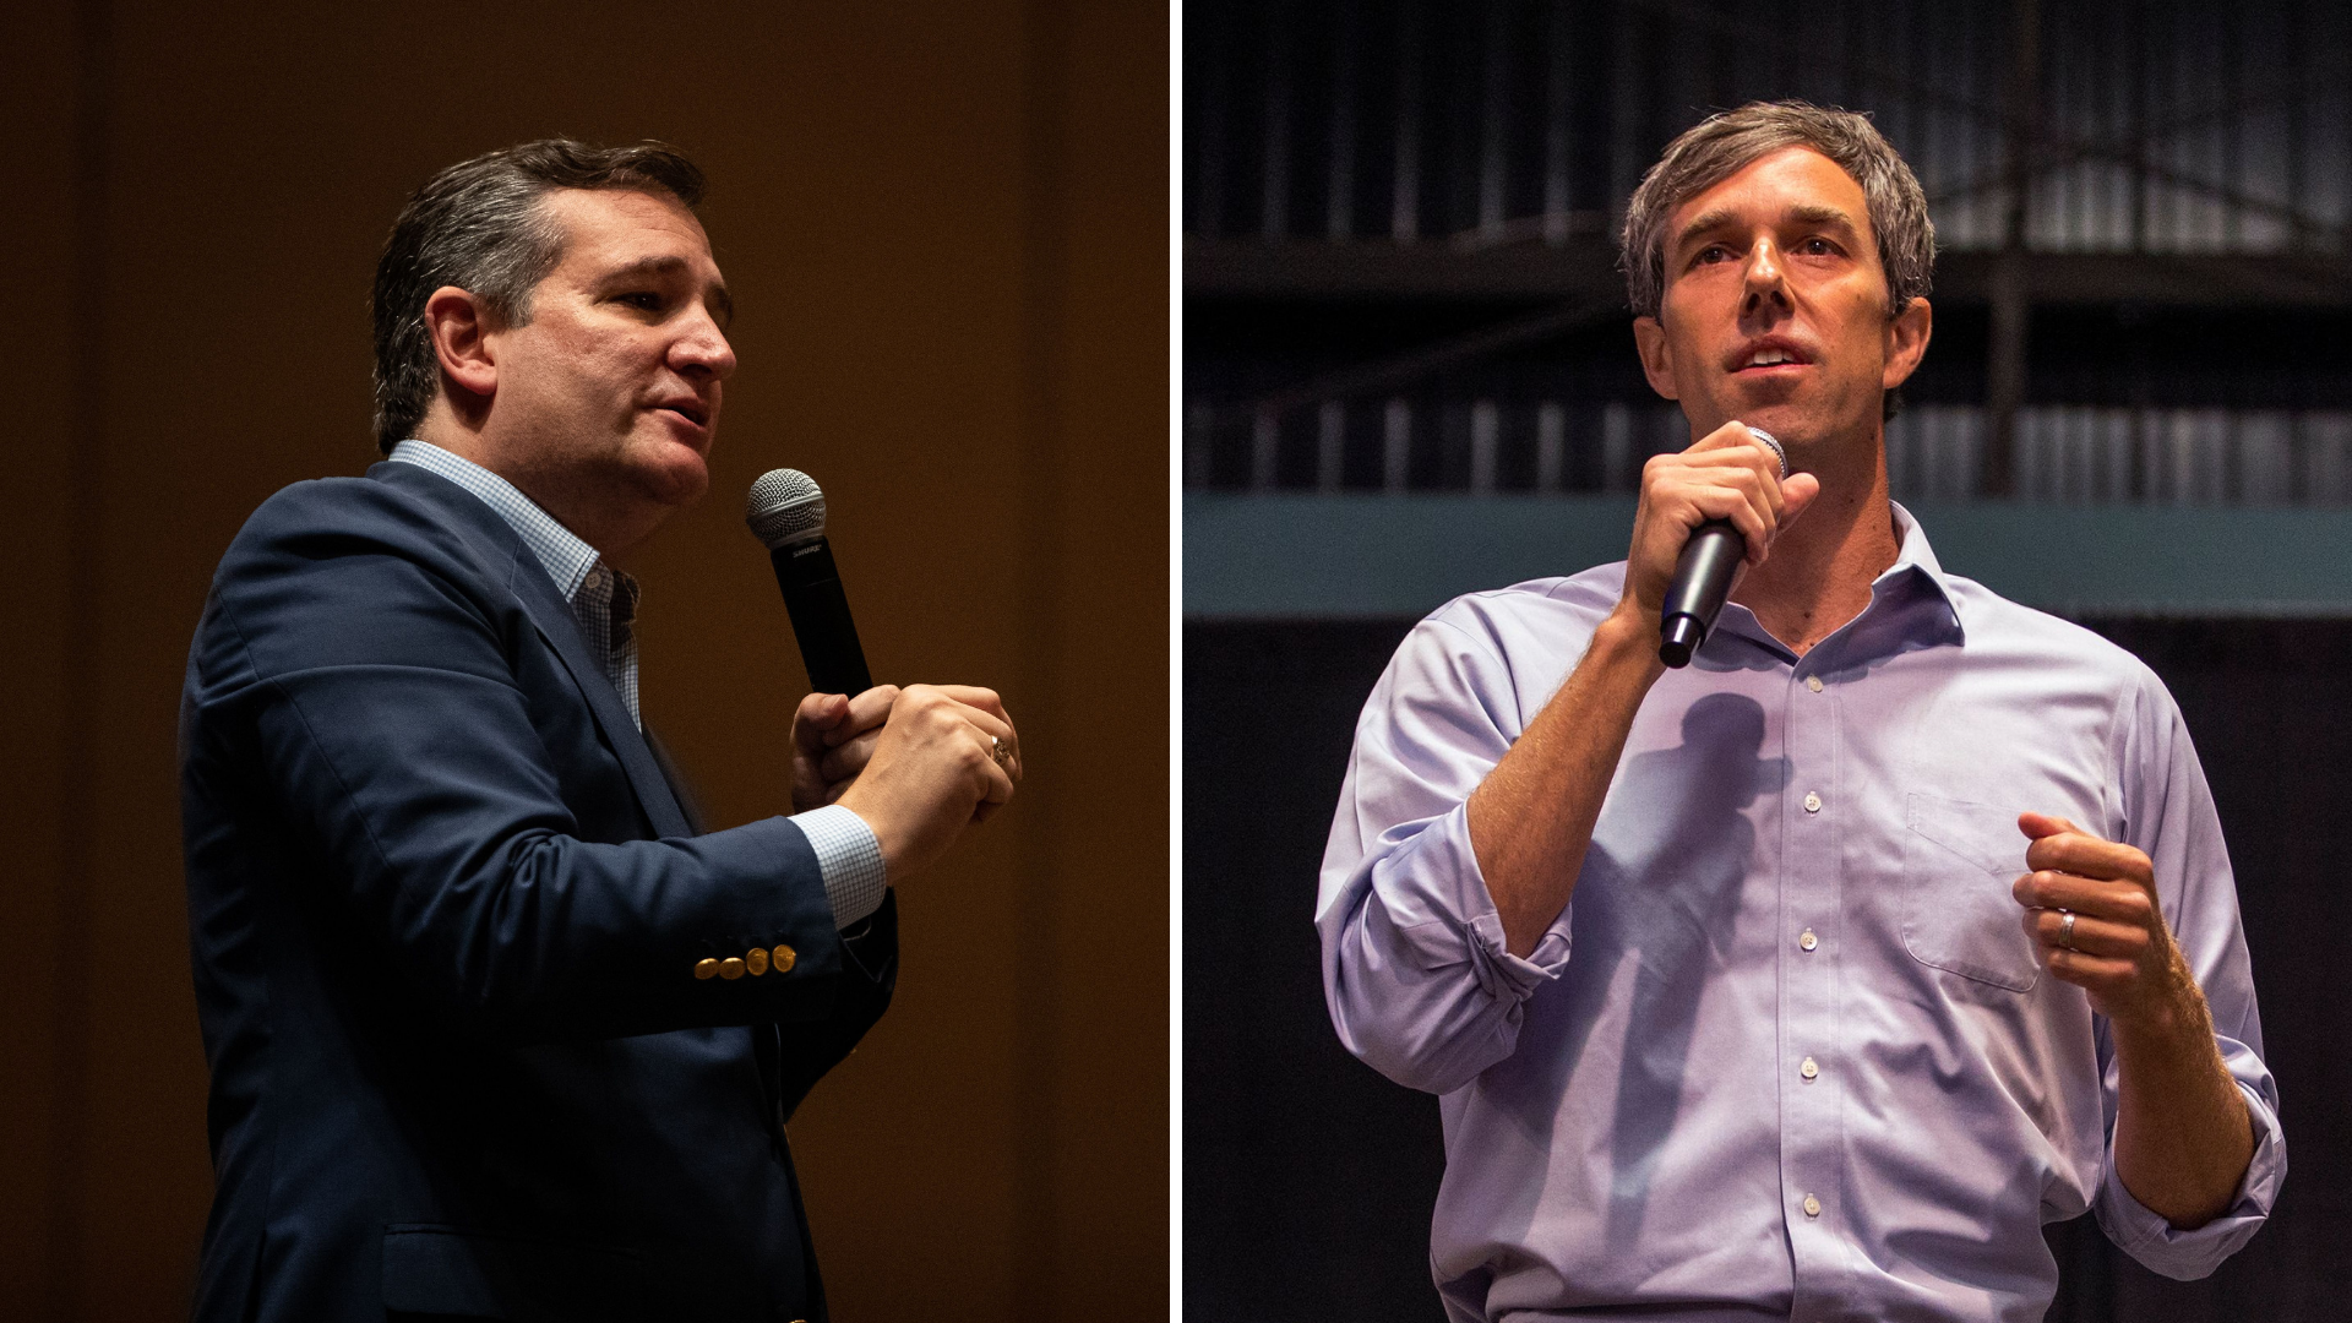 U.S. Senator Ted Cruz (left) and U.S. Rep. Beto O'Rourke (right) competed for Texas U.S. Senate seat. Cruz emerged the winner..